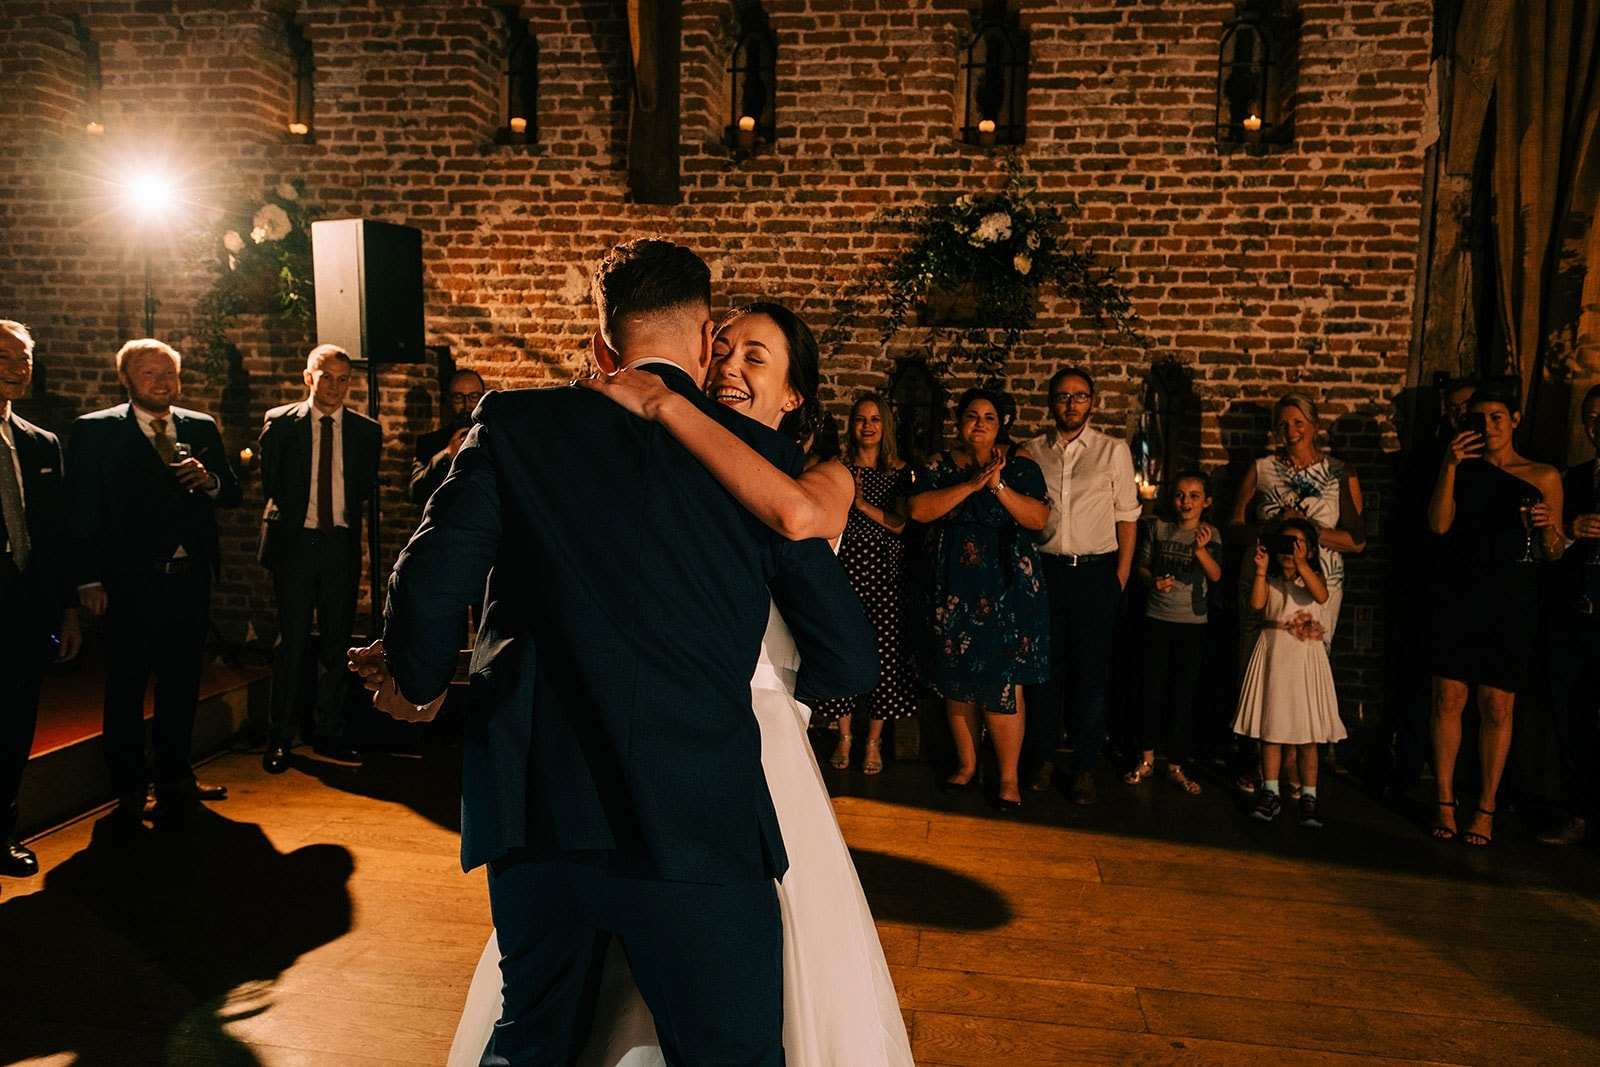 Jacquie has a beaming smile during their first dance